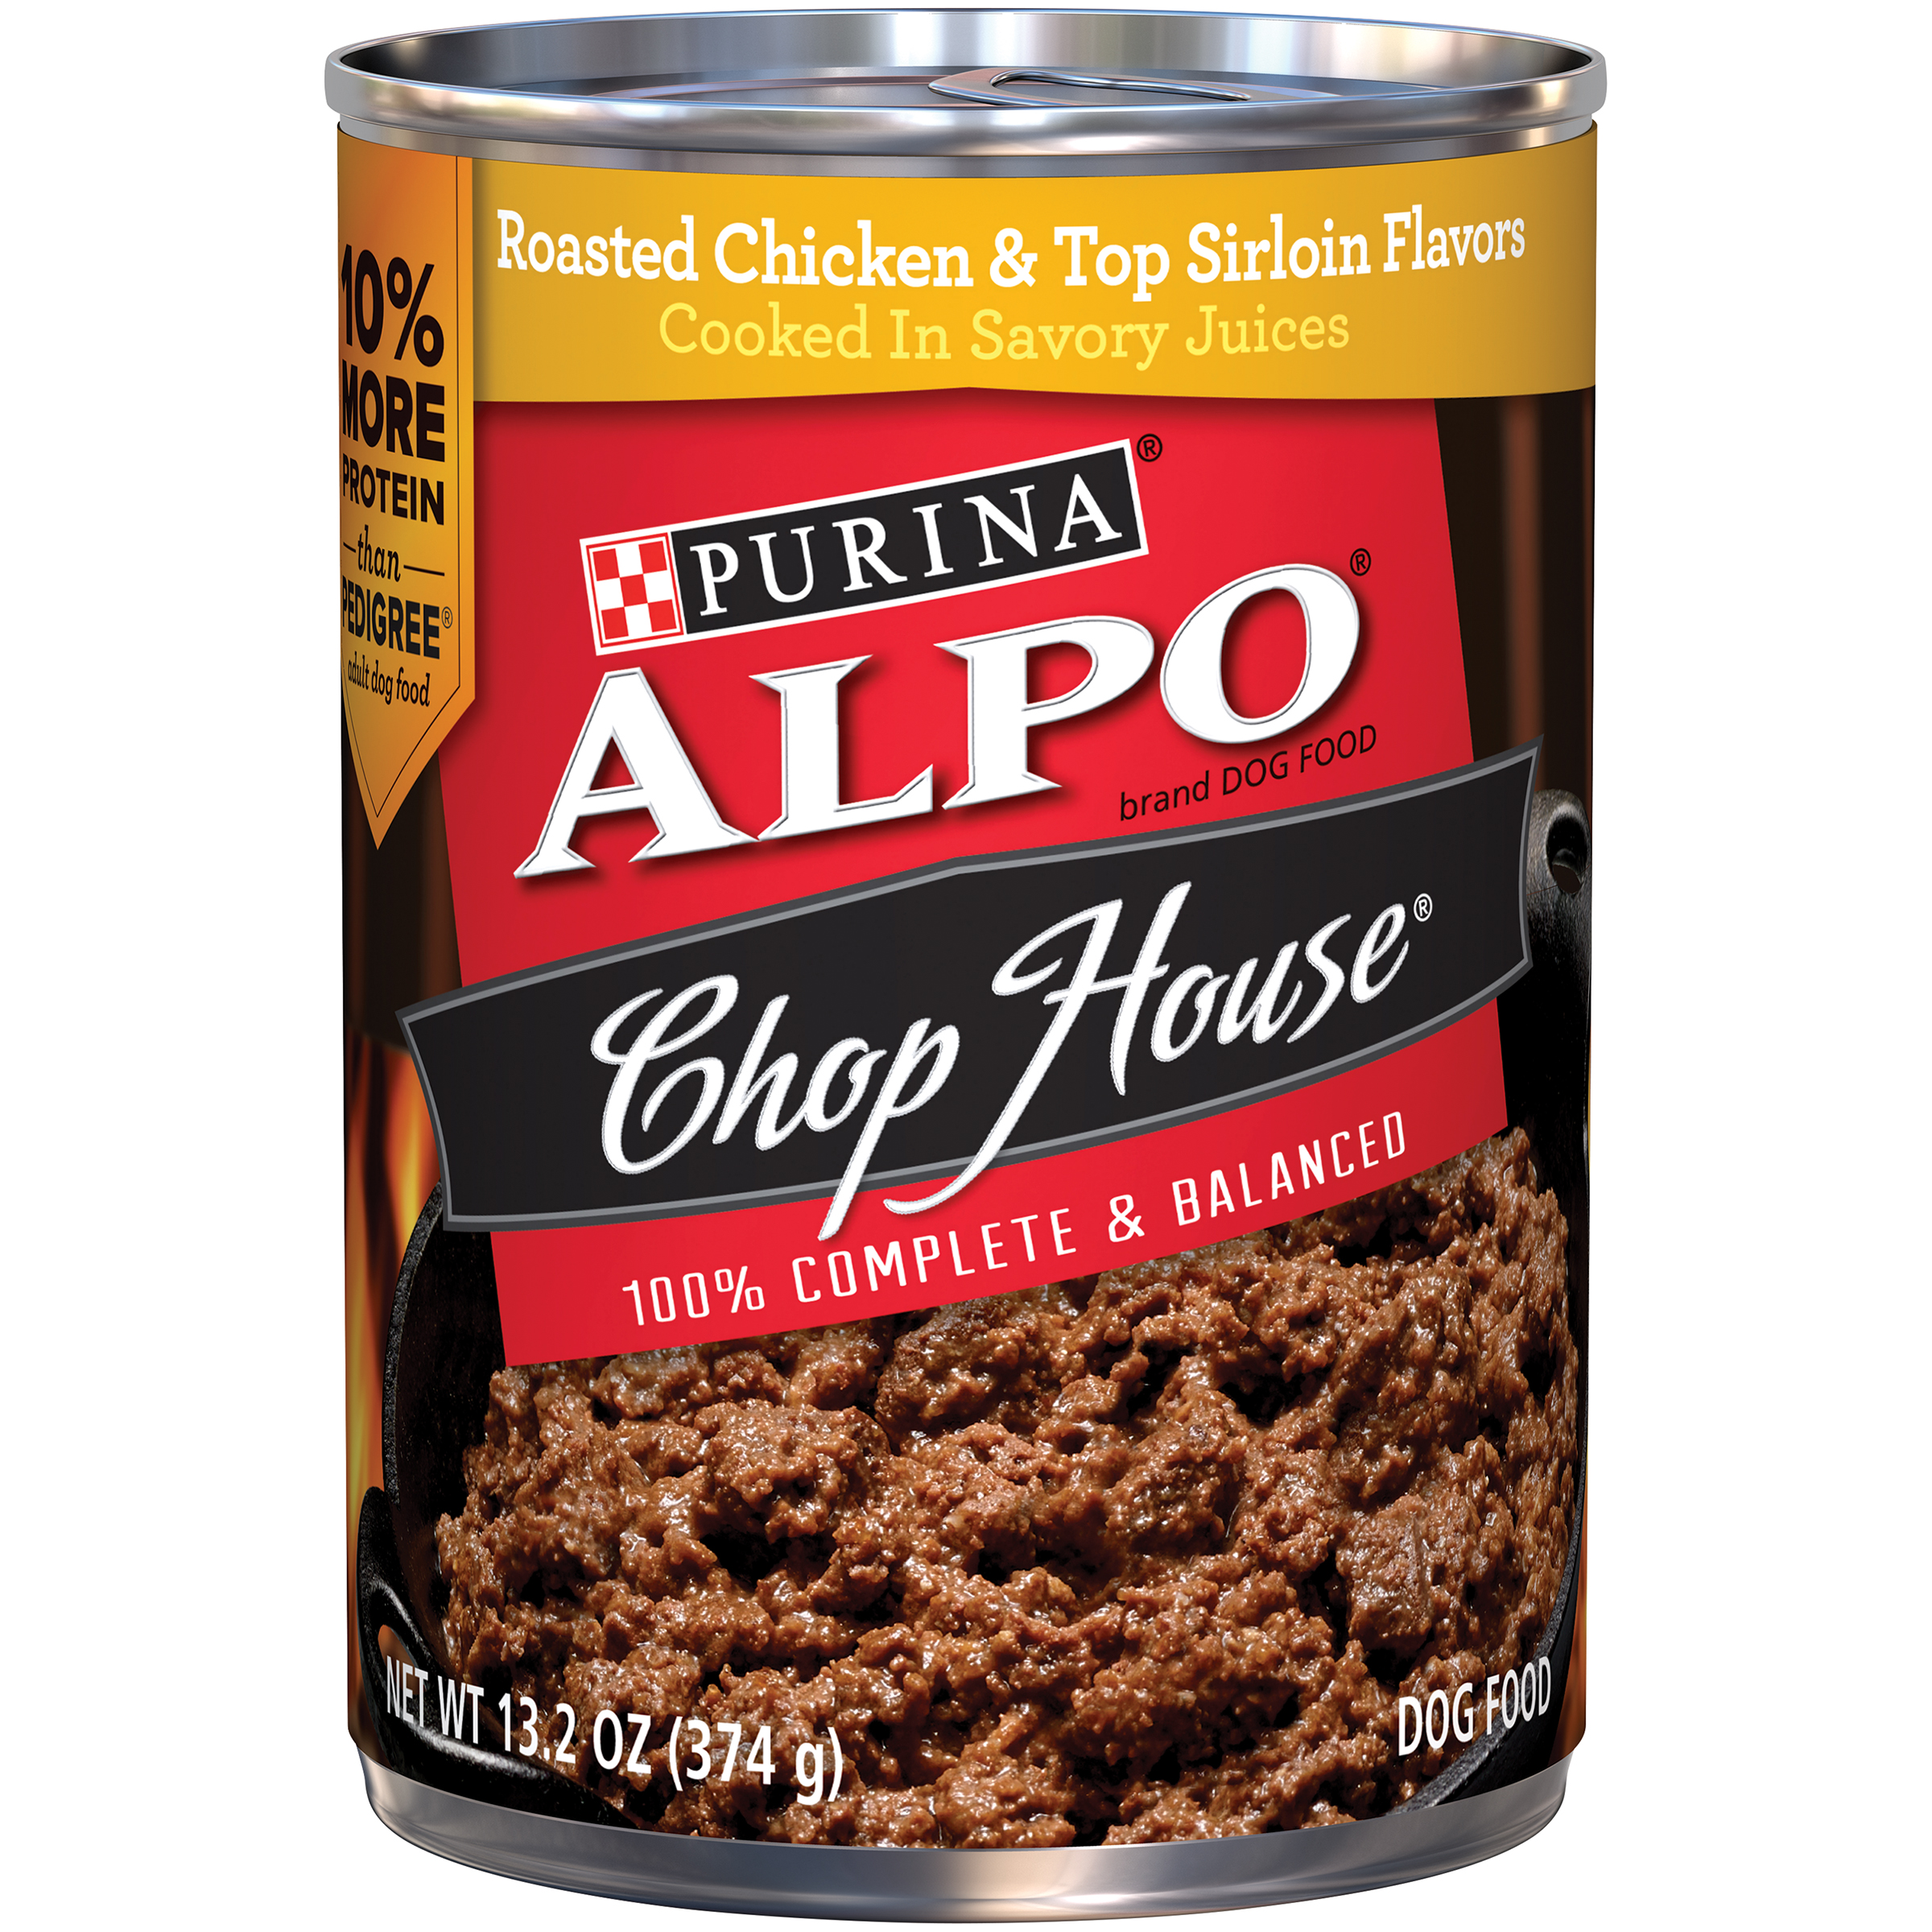 Purina ALPO Chop House Roasted Chicken & Top Sirloin Flavors Dog Food 13.2 oz. Can